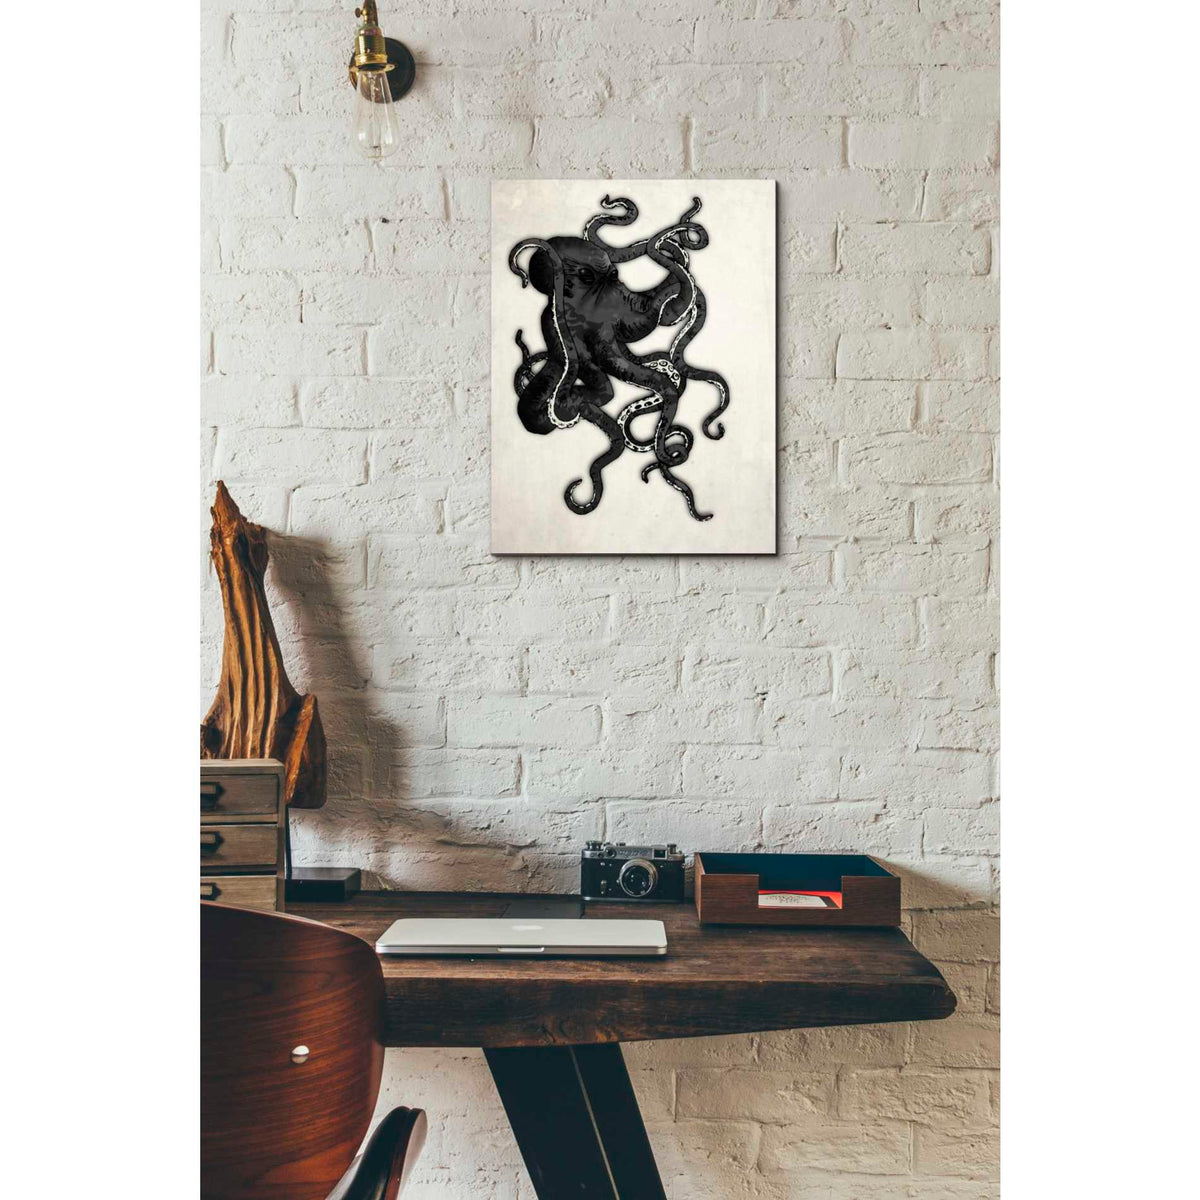 Cortesi Home 'Octopus' by Nicklas Gustafsson, Canvas Wall Art,12 x 16